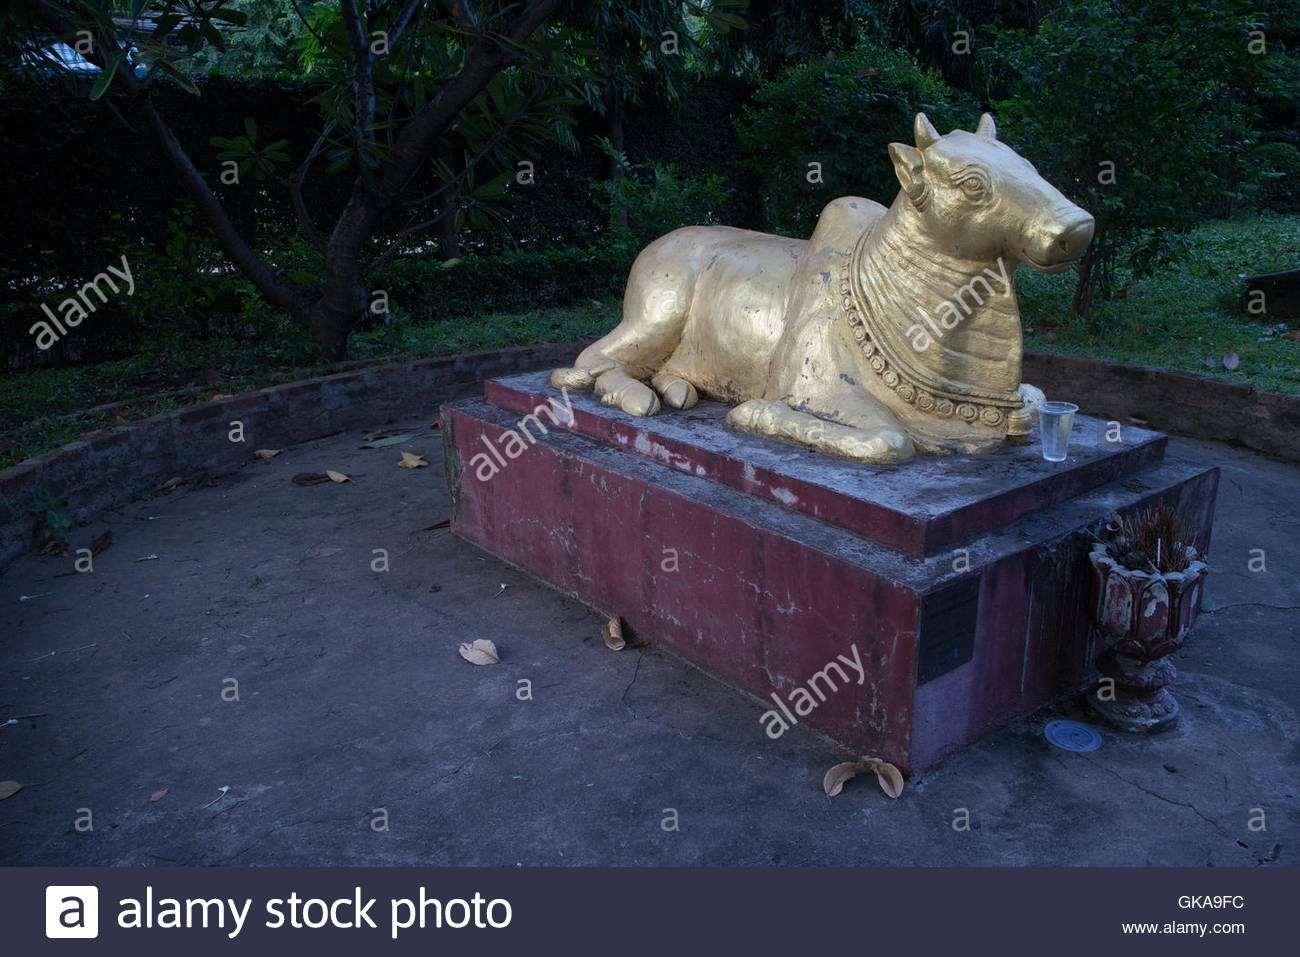 Horizontal Medium View Of Golden Brahmin Cow Statue At Dusk In An Asian  Garden; In The Hindu Religion, The Cow Is Revered